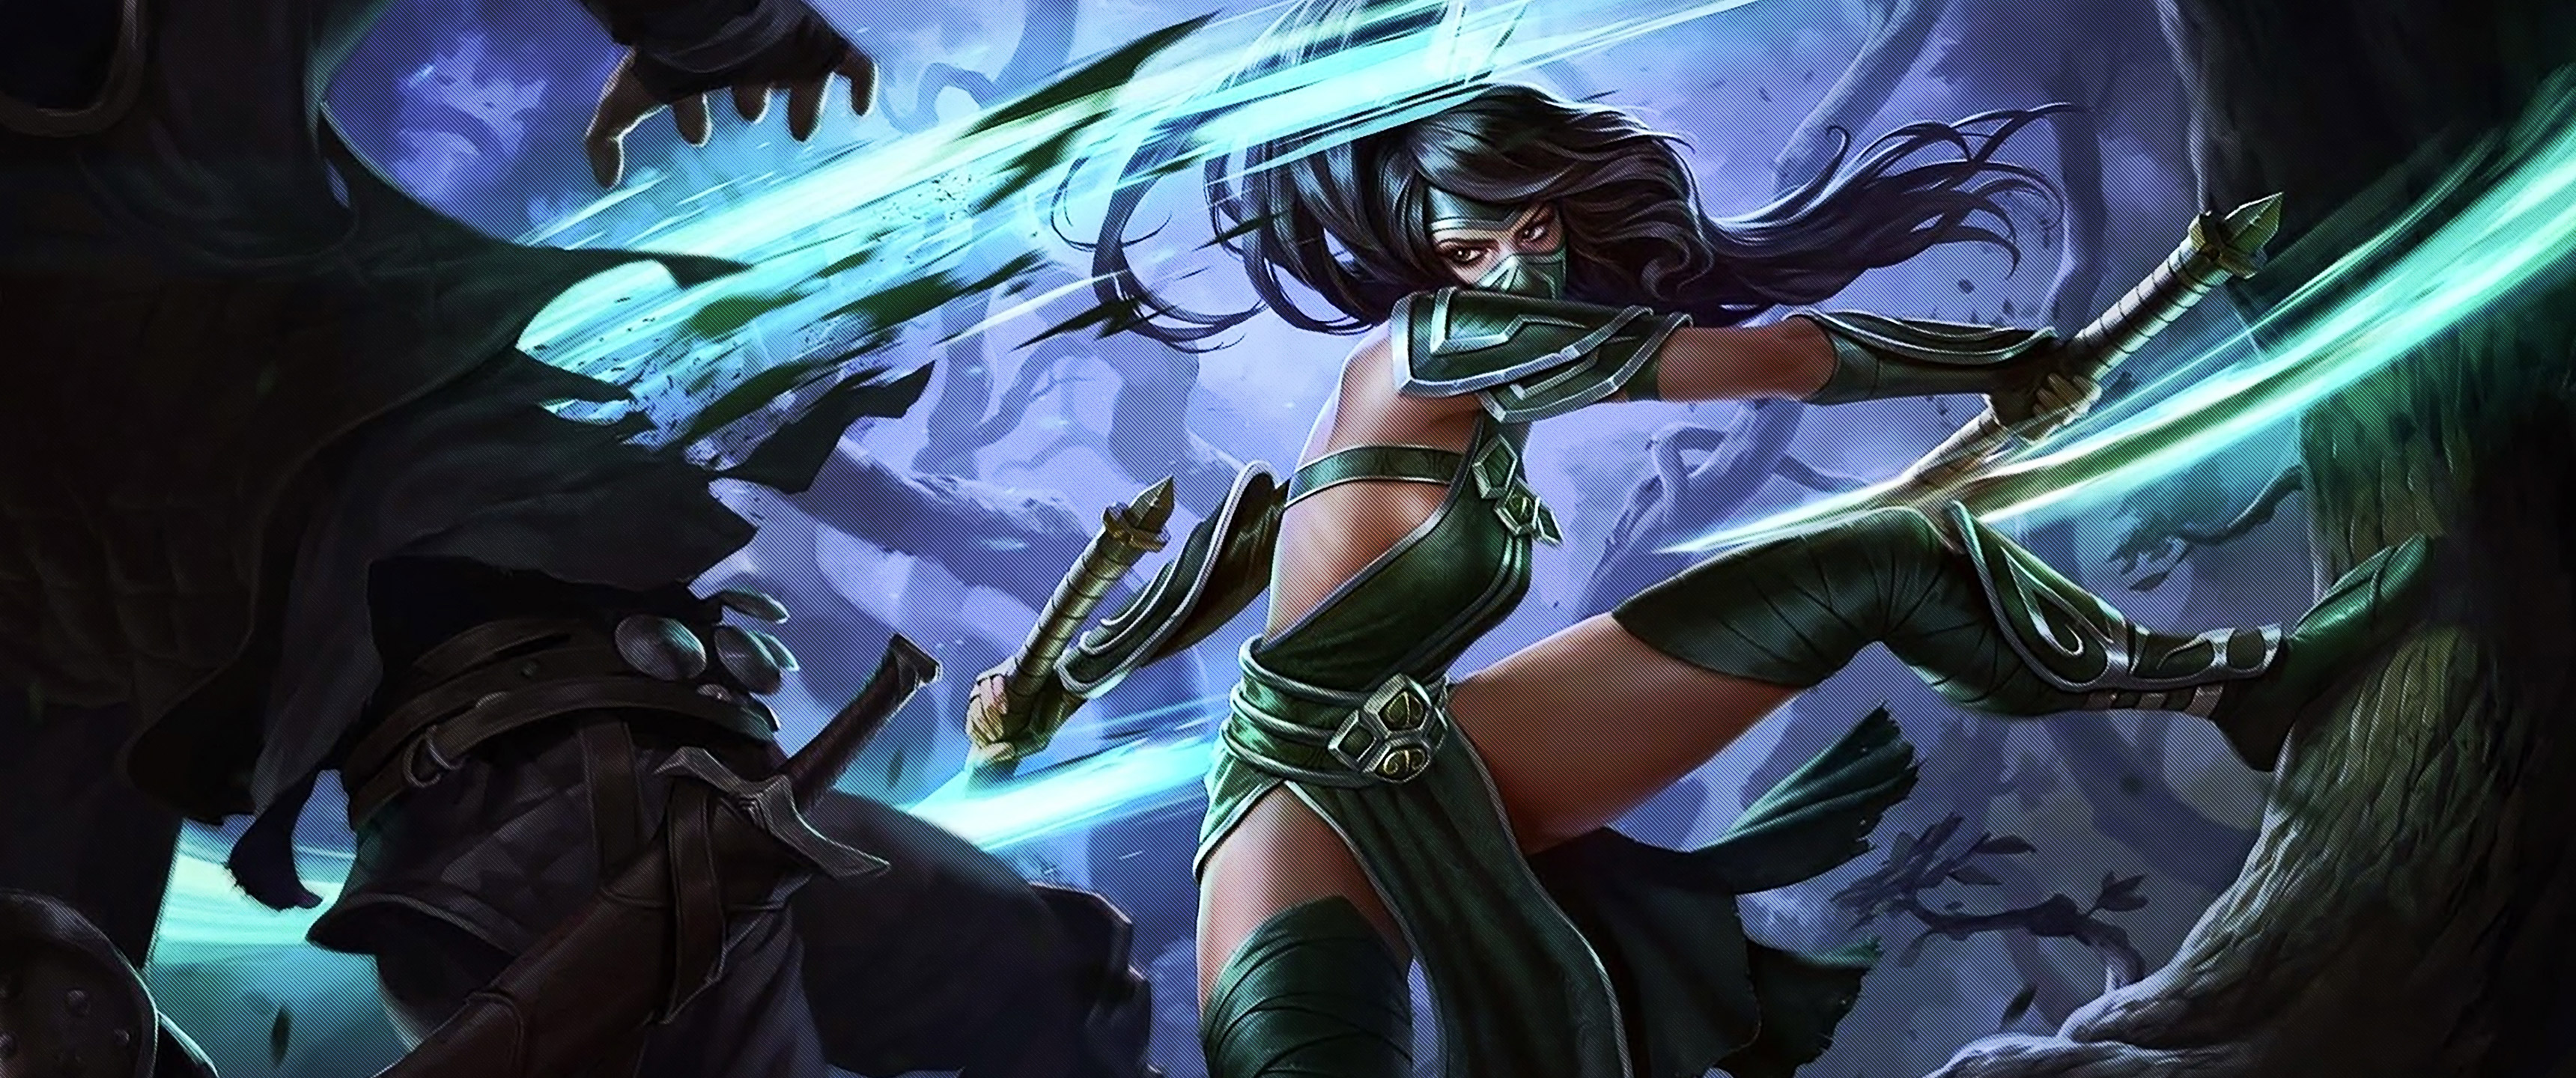 91 Akali League Of Legends HD Wallpapers